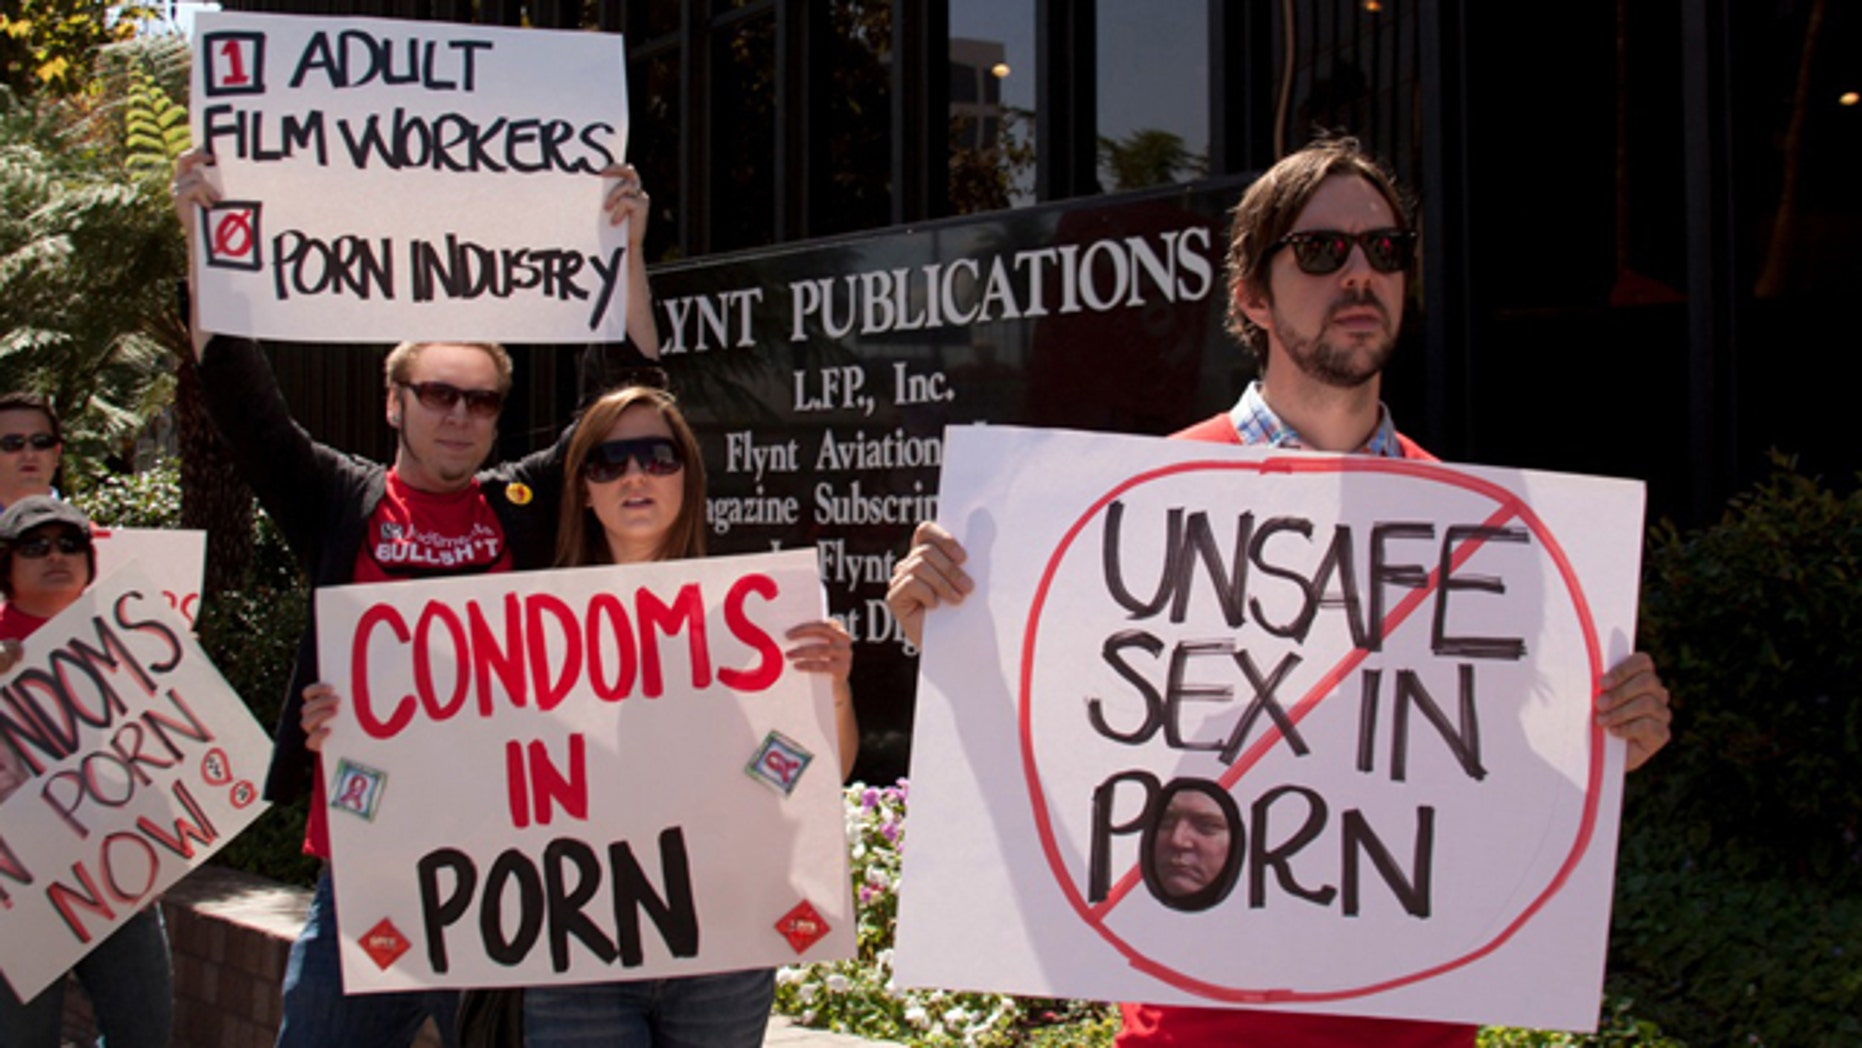 Aug. 26: Protesters came together outside porn producer - Larry Flynt's corporate headquarters today in Beverly Hills in support of complaints made to Cal/OSHA regarding the blacklist on the use of condoms in adult films.